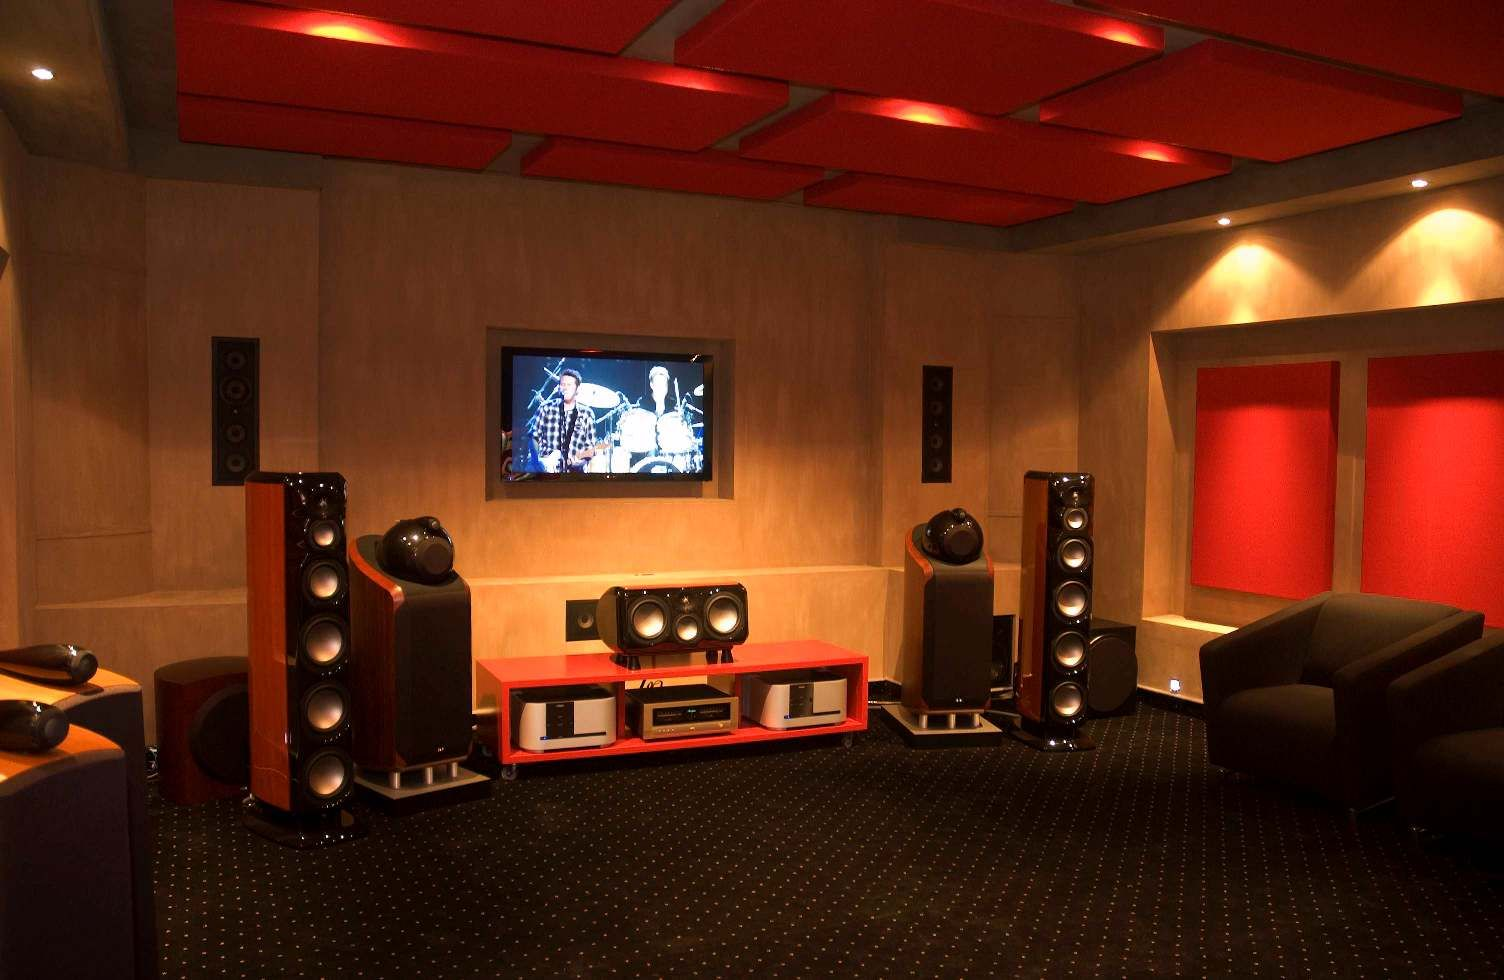 Best Home Theater System Best Home Theater System Moderately ...